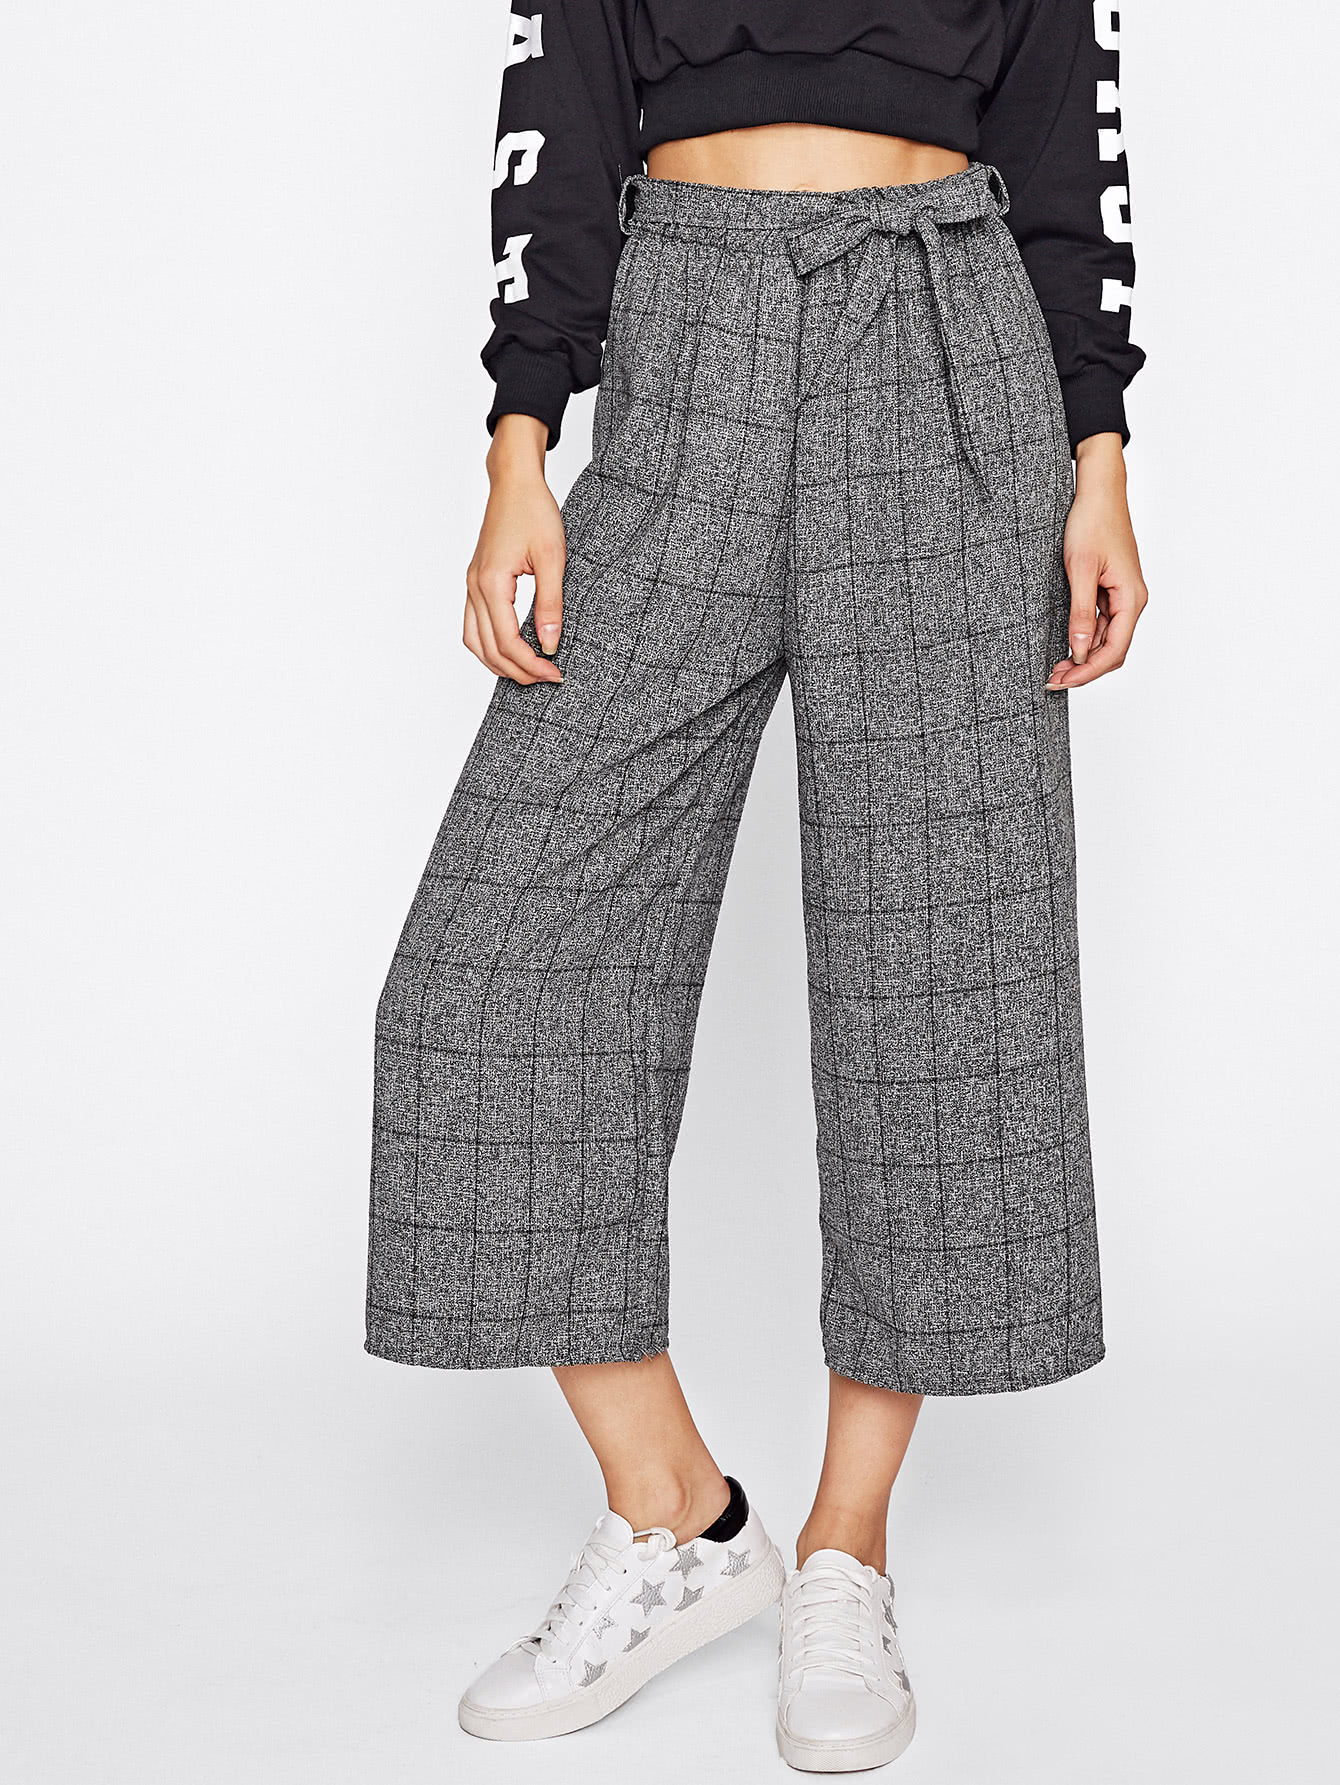 Windowpane Print Tie Waist Wide Leg Pants bow tie side wide leg pants